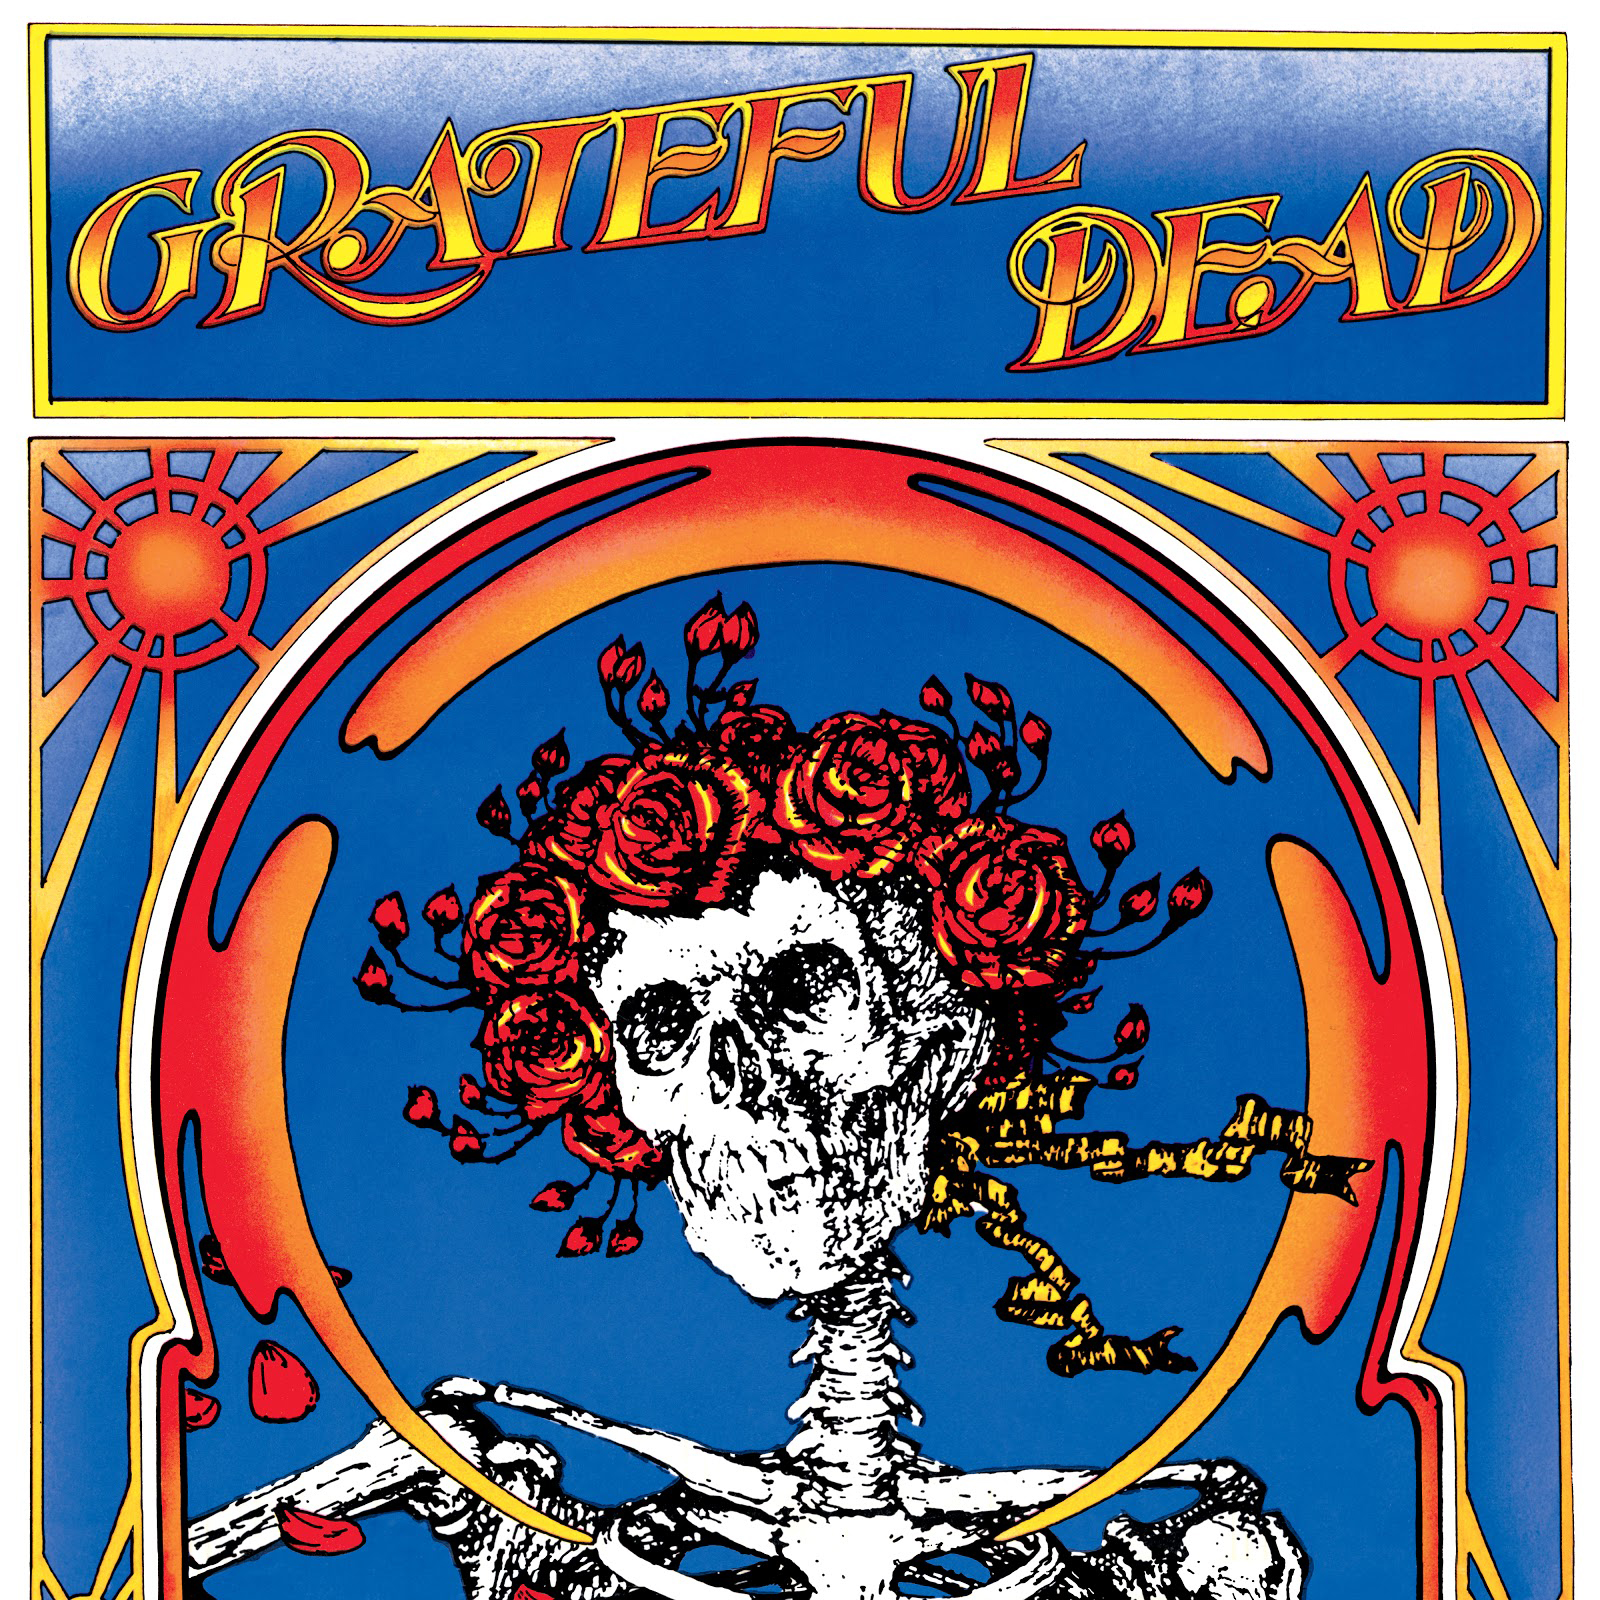 GRATEFUL DEAD announce 'Skull & Roses' 50th anniversary expanded editions